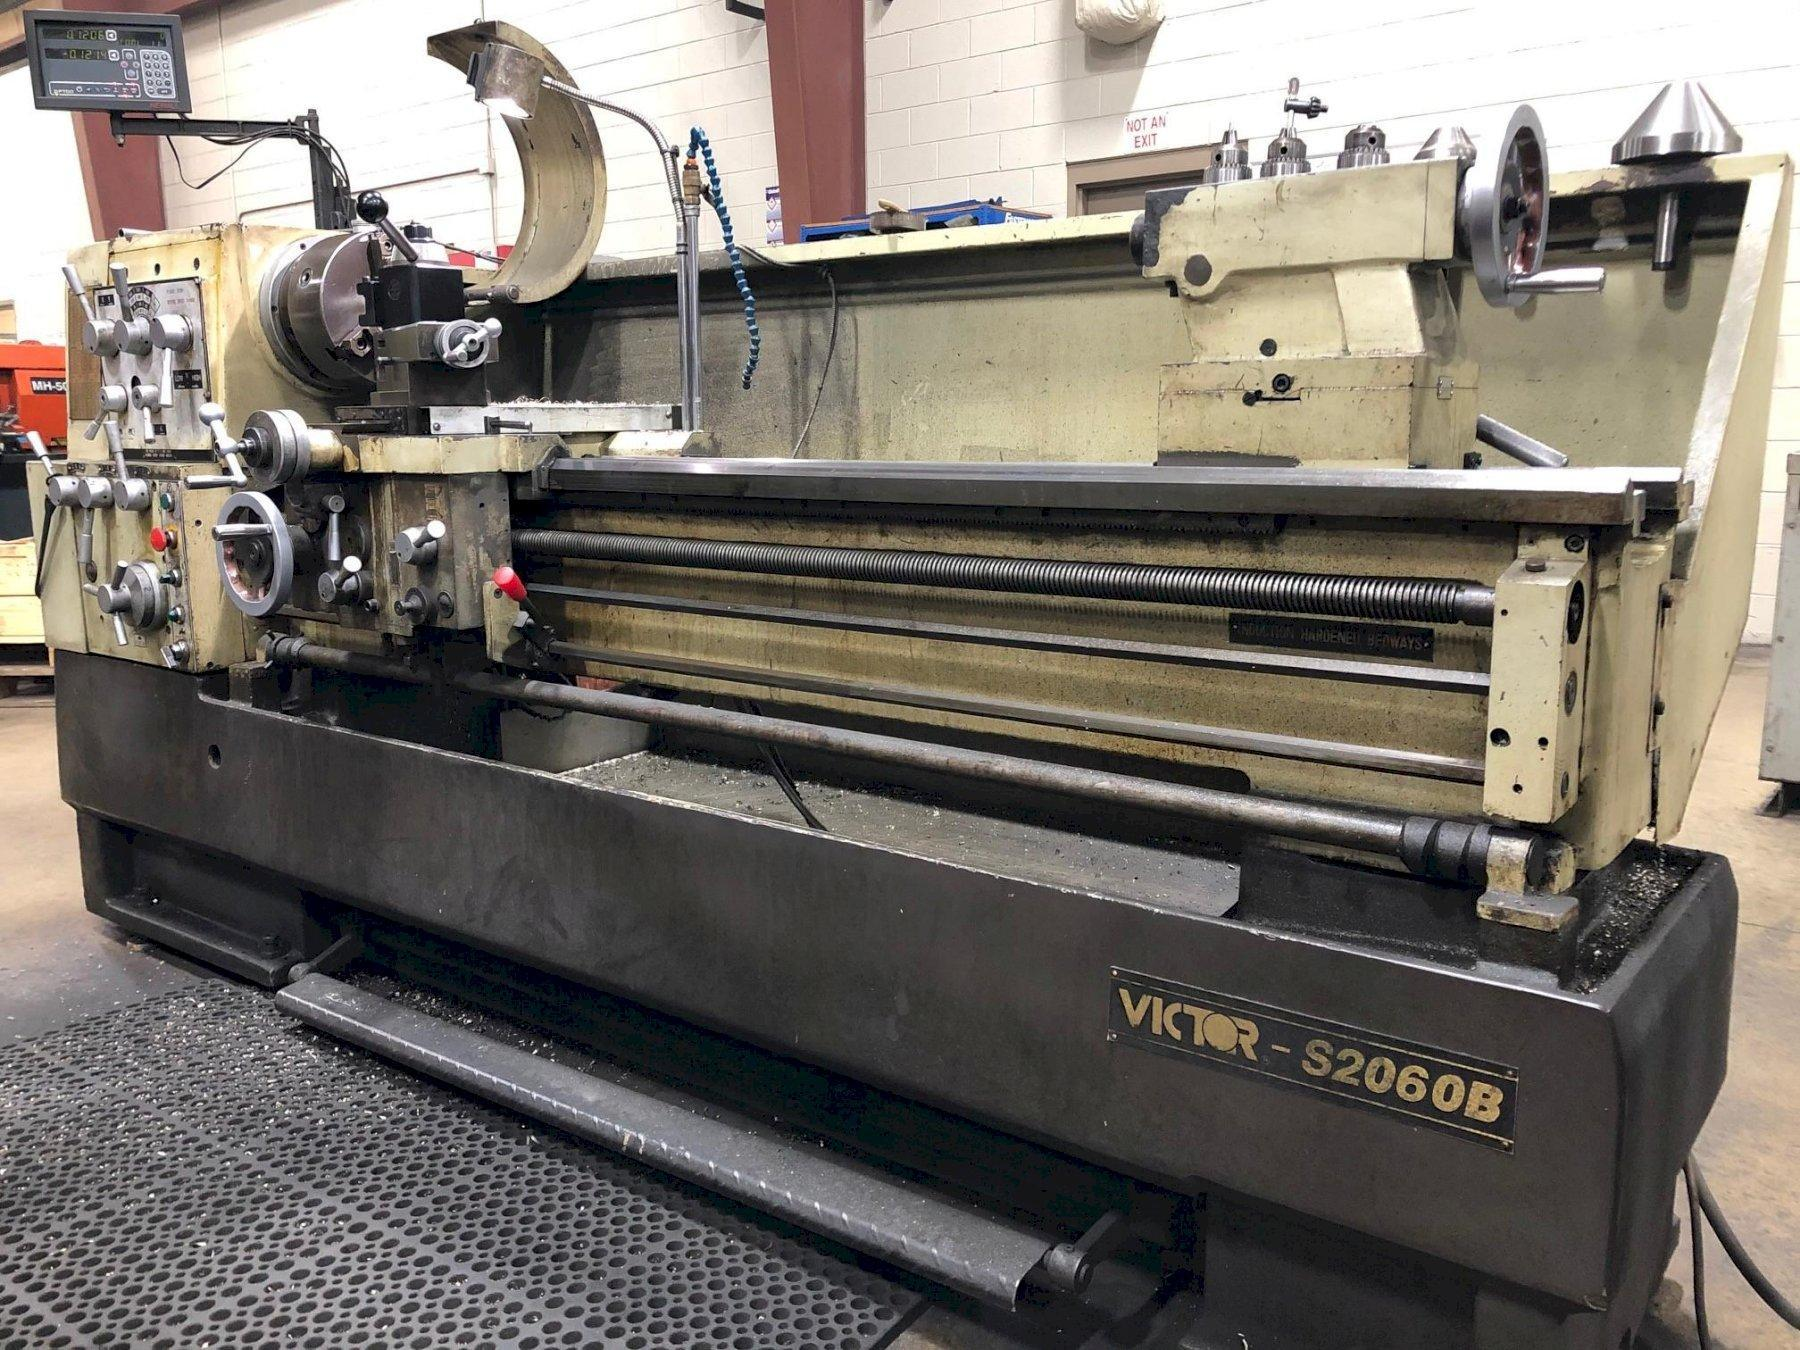 Victor Model S2060B Engine Lathe